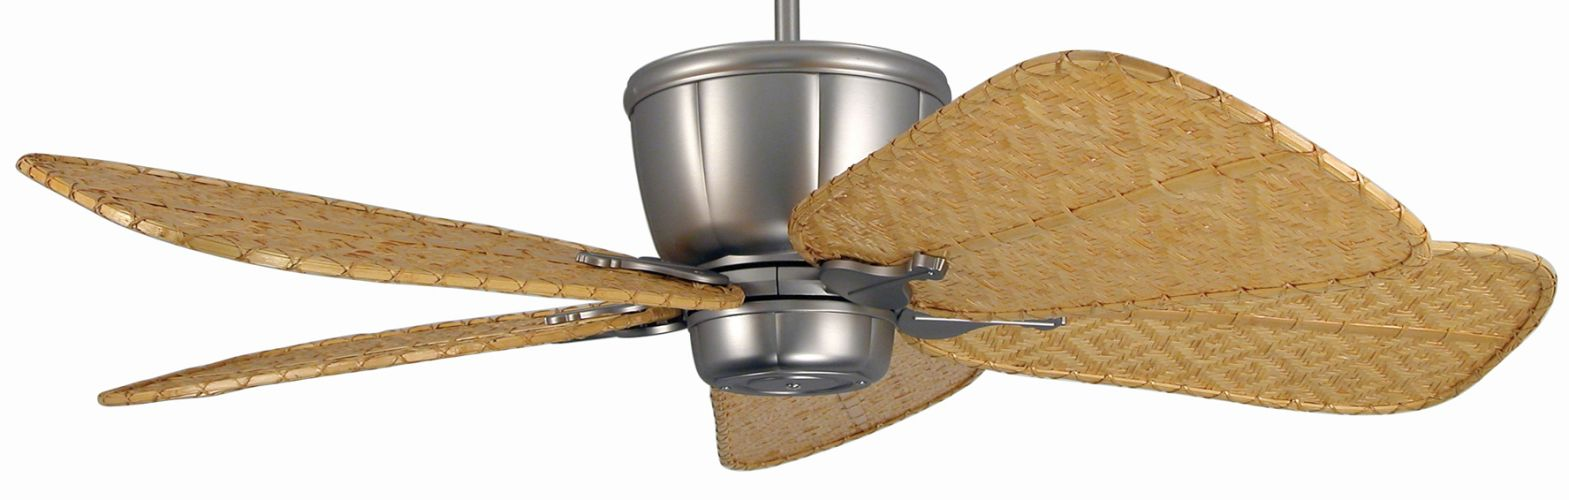 Fanimation Fp1820sn Isd7c Satin Nickel With Bamboo Blades Sandella 5 Blade 52 Ceiling Fan Uplight Handheld Remote And Wall Controller